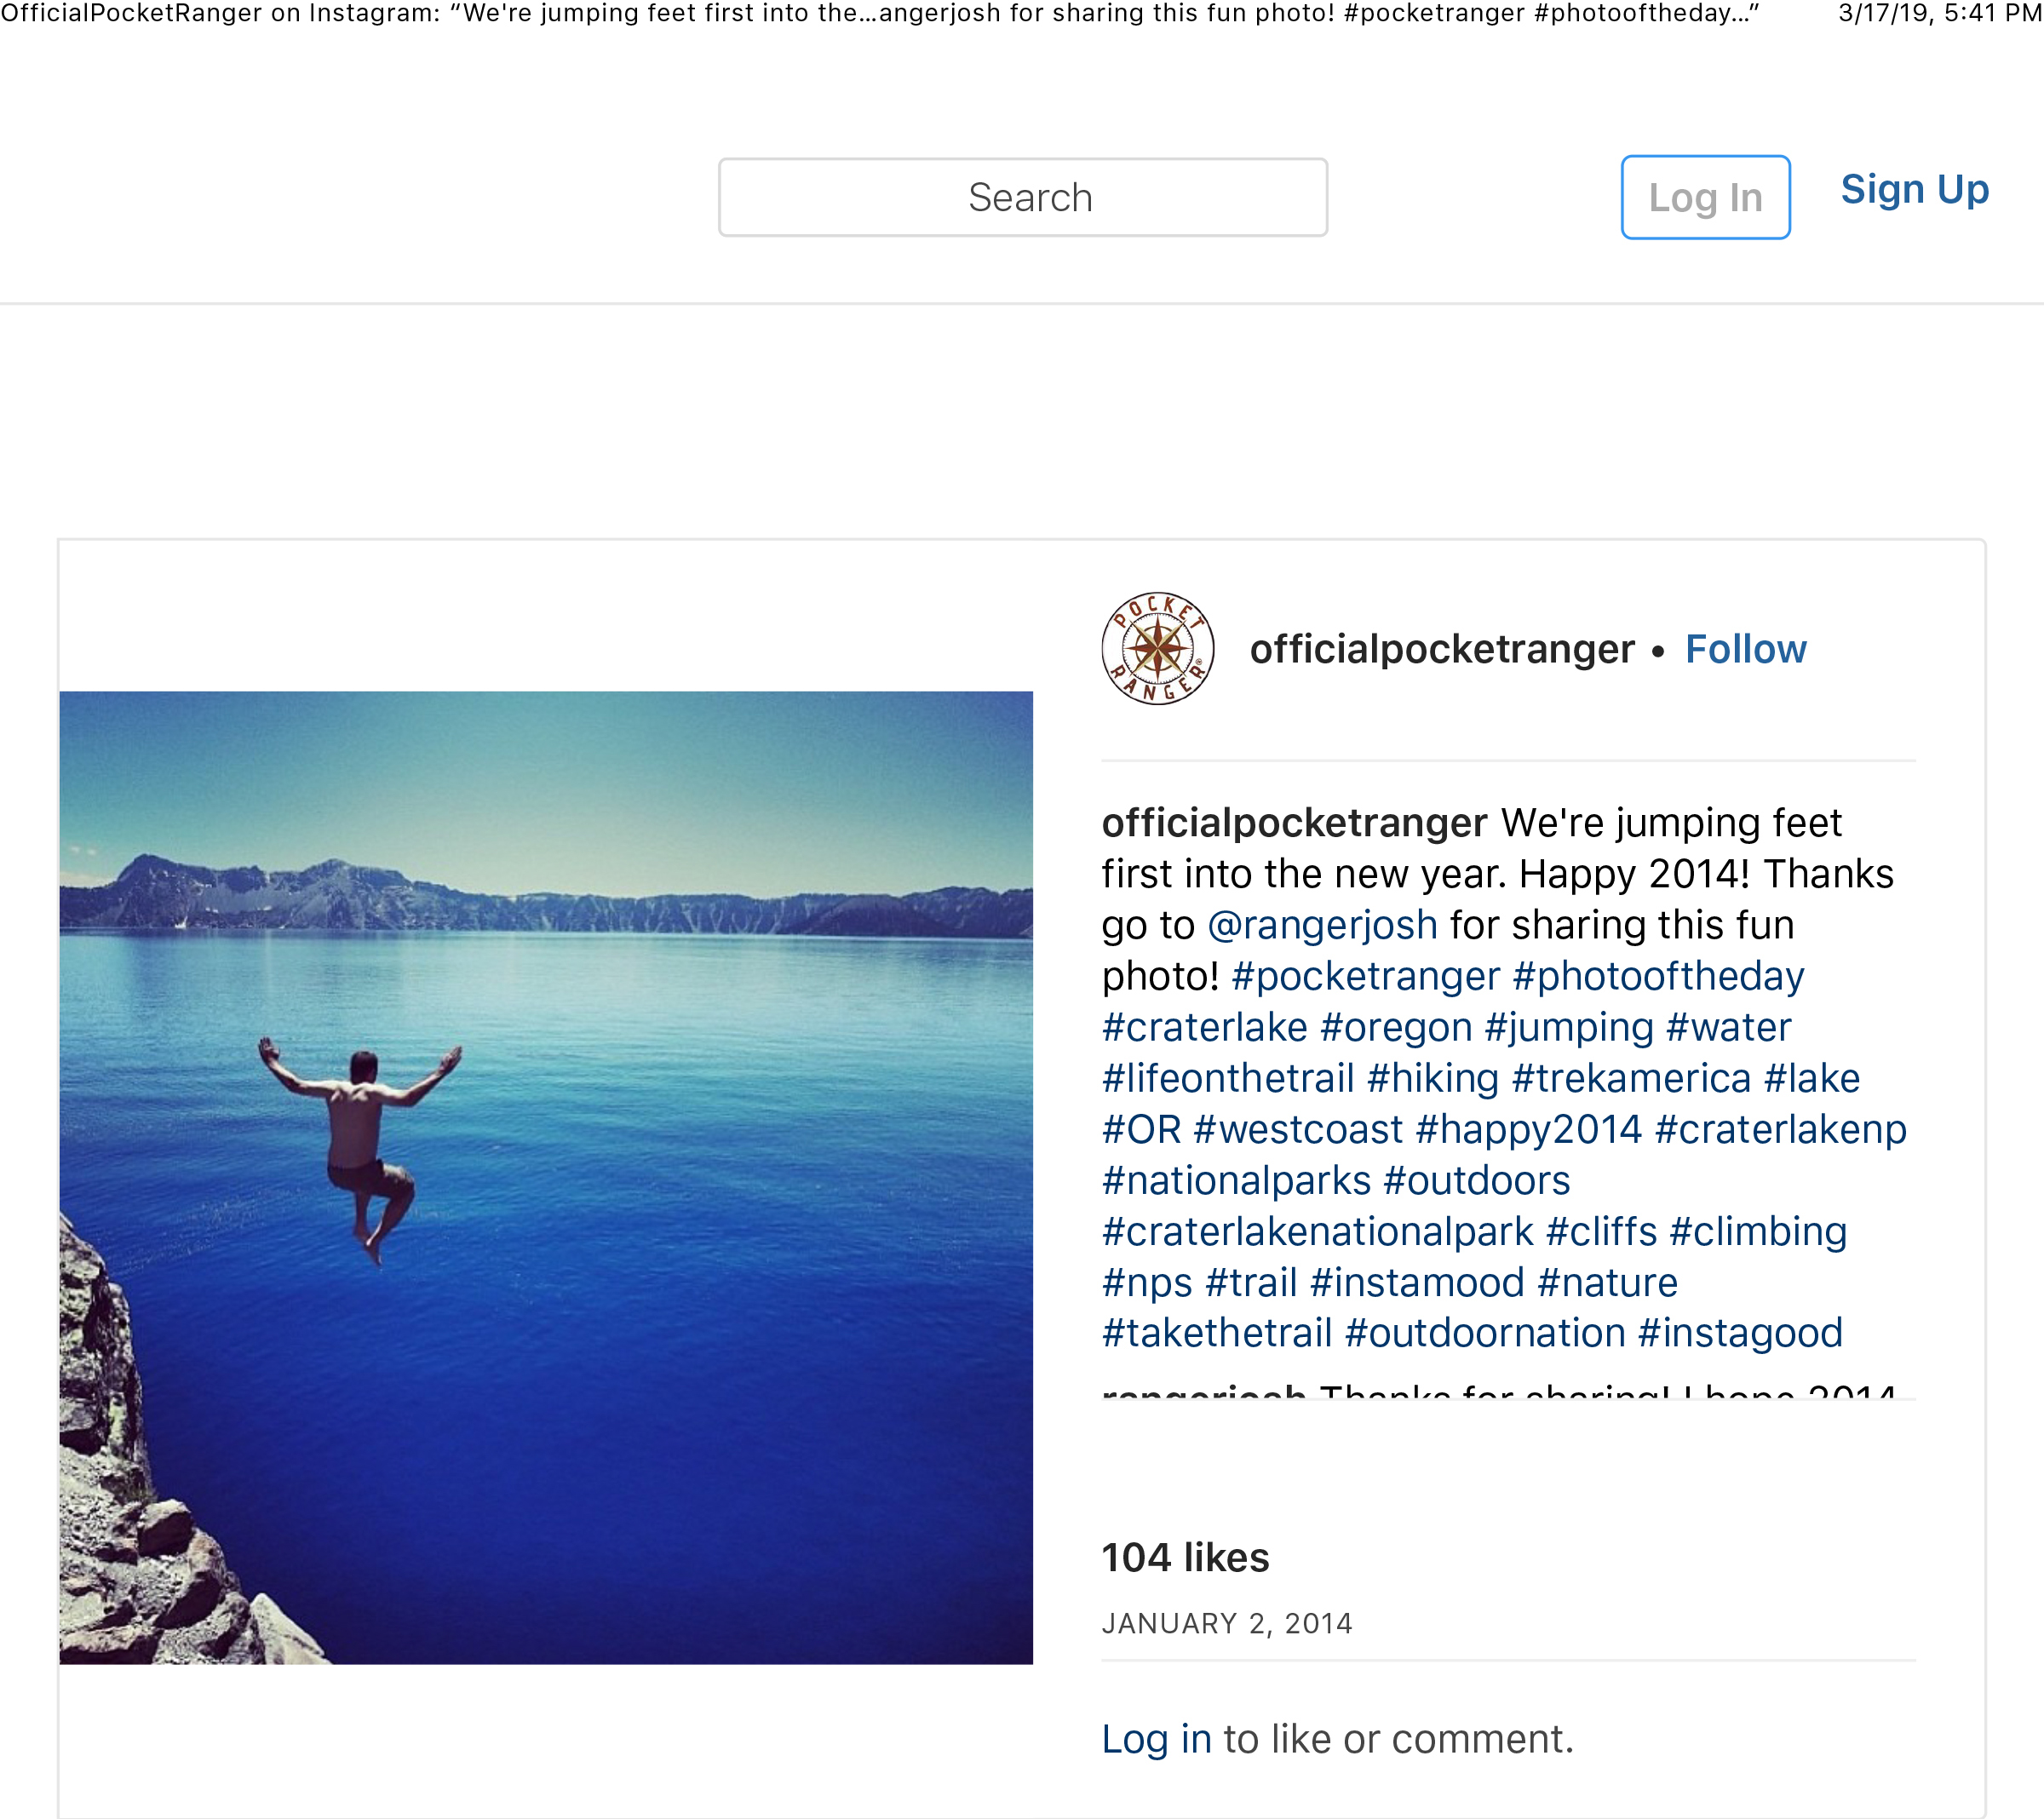 """OfficialPocketRanger on Instagram_ """"We_re jumping feet first into the new year. Happy 2014! Thanks go to @rangerjosh for sharing this fun photo! #pocketranger #photooftheday…"""" copy copy.jpg"""